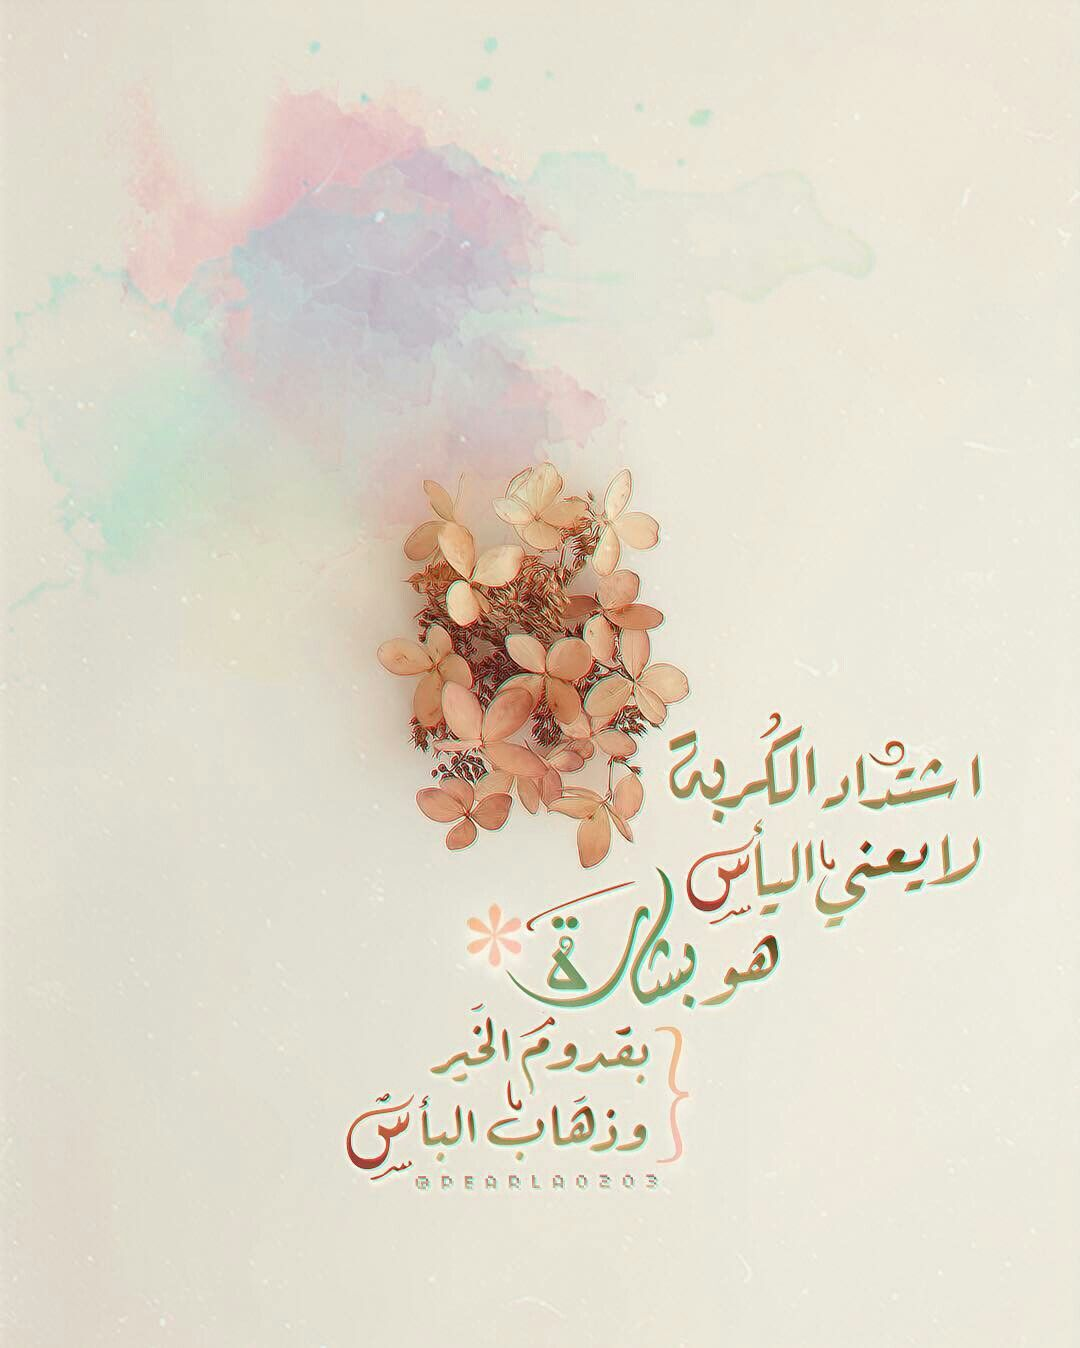 Desertrose Allahumma Aameen Islamic Pictures Arabic Quotes Arabic Calligraphy